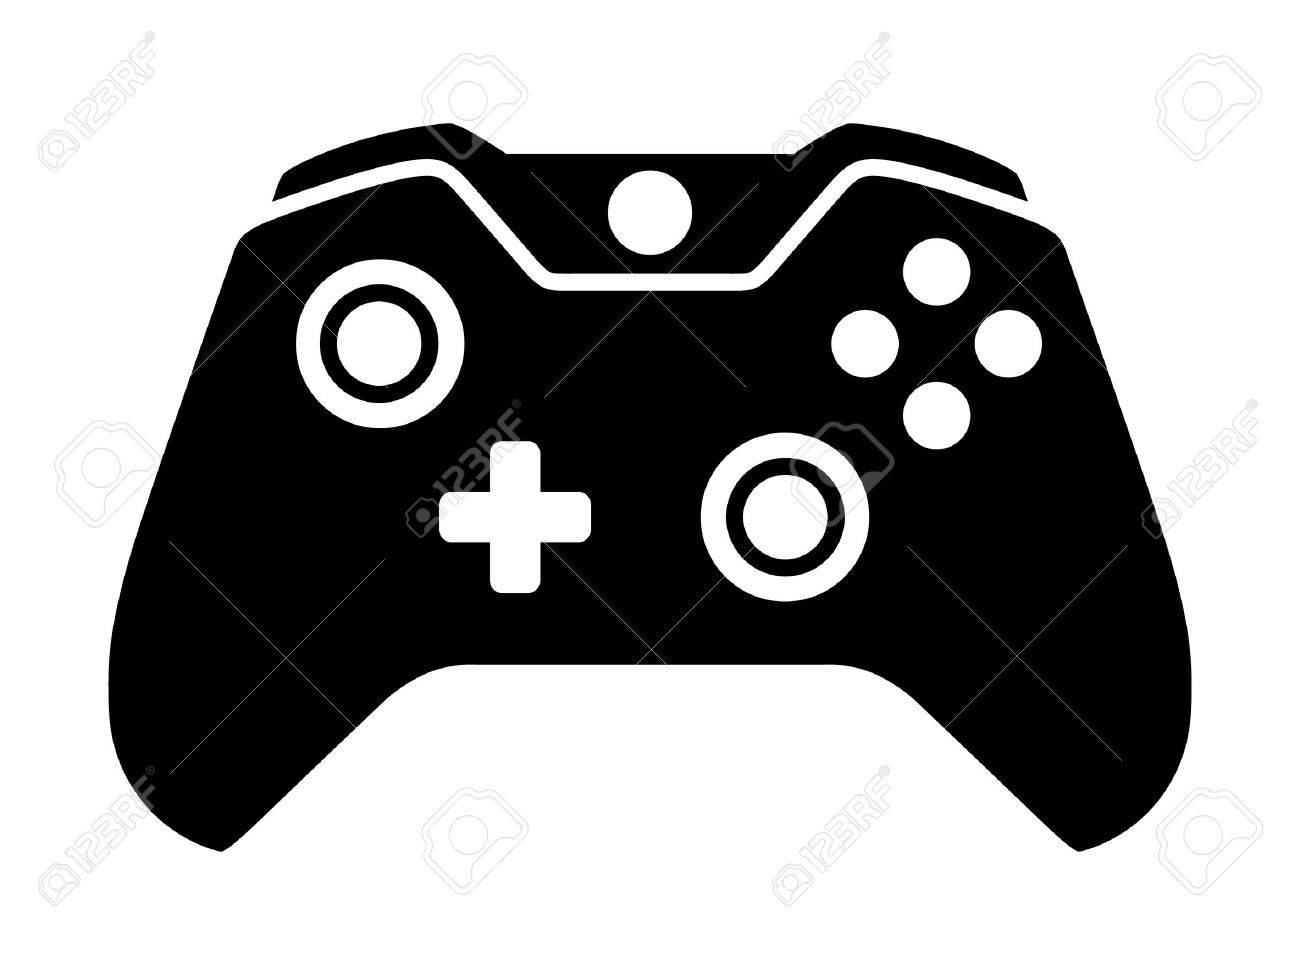 Vector - Video game controller or gamepad flat icon for apps and websites